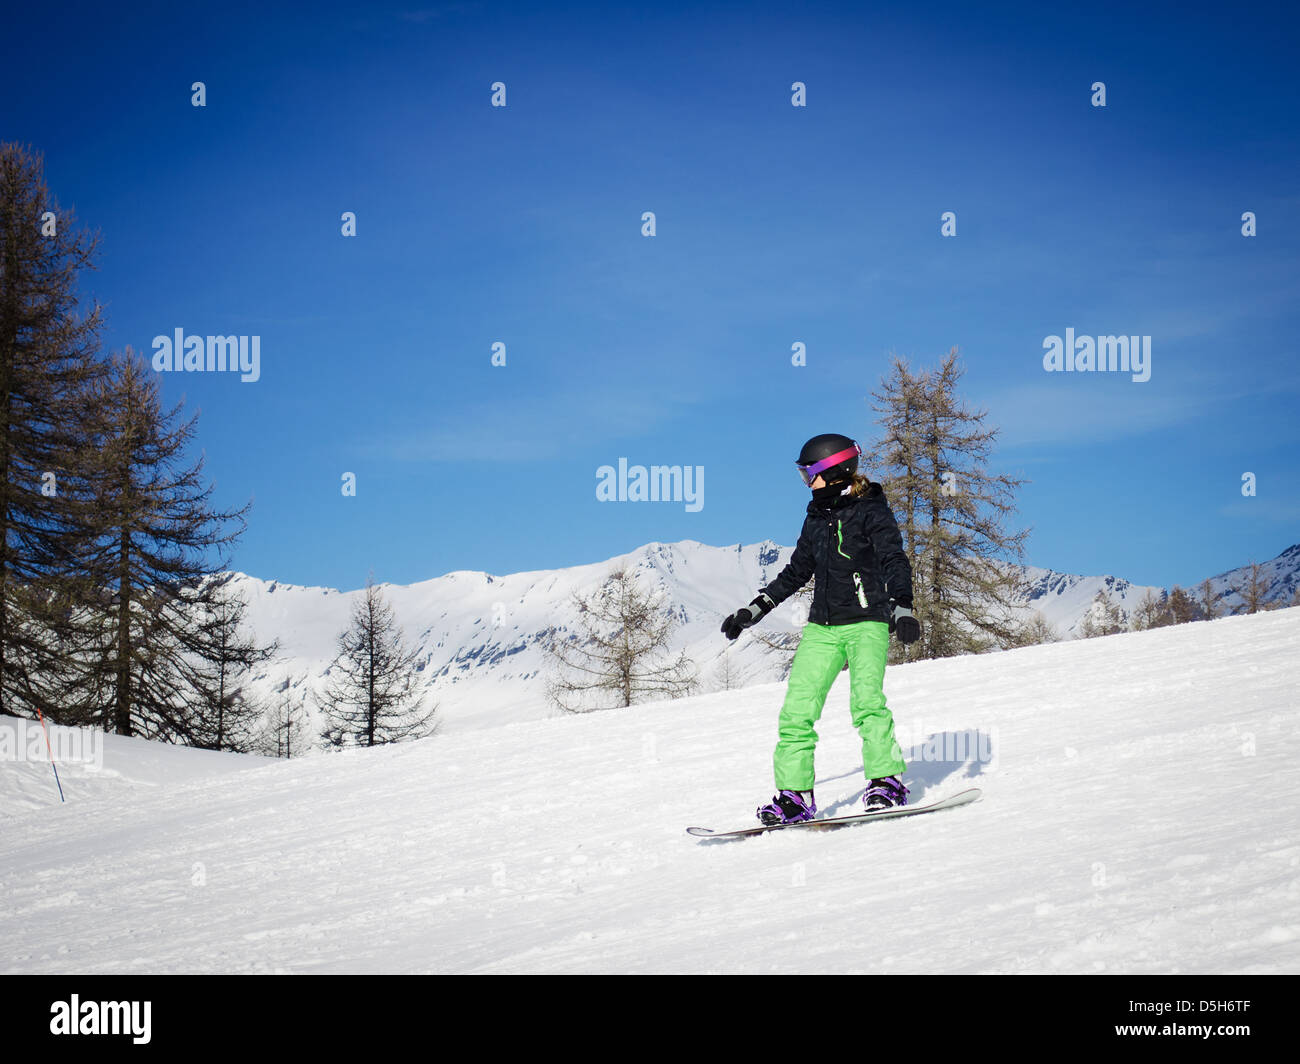 A girl or woman in green ski suit snowboarding in a sunny day - Stock Image